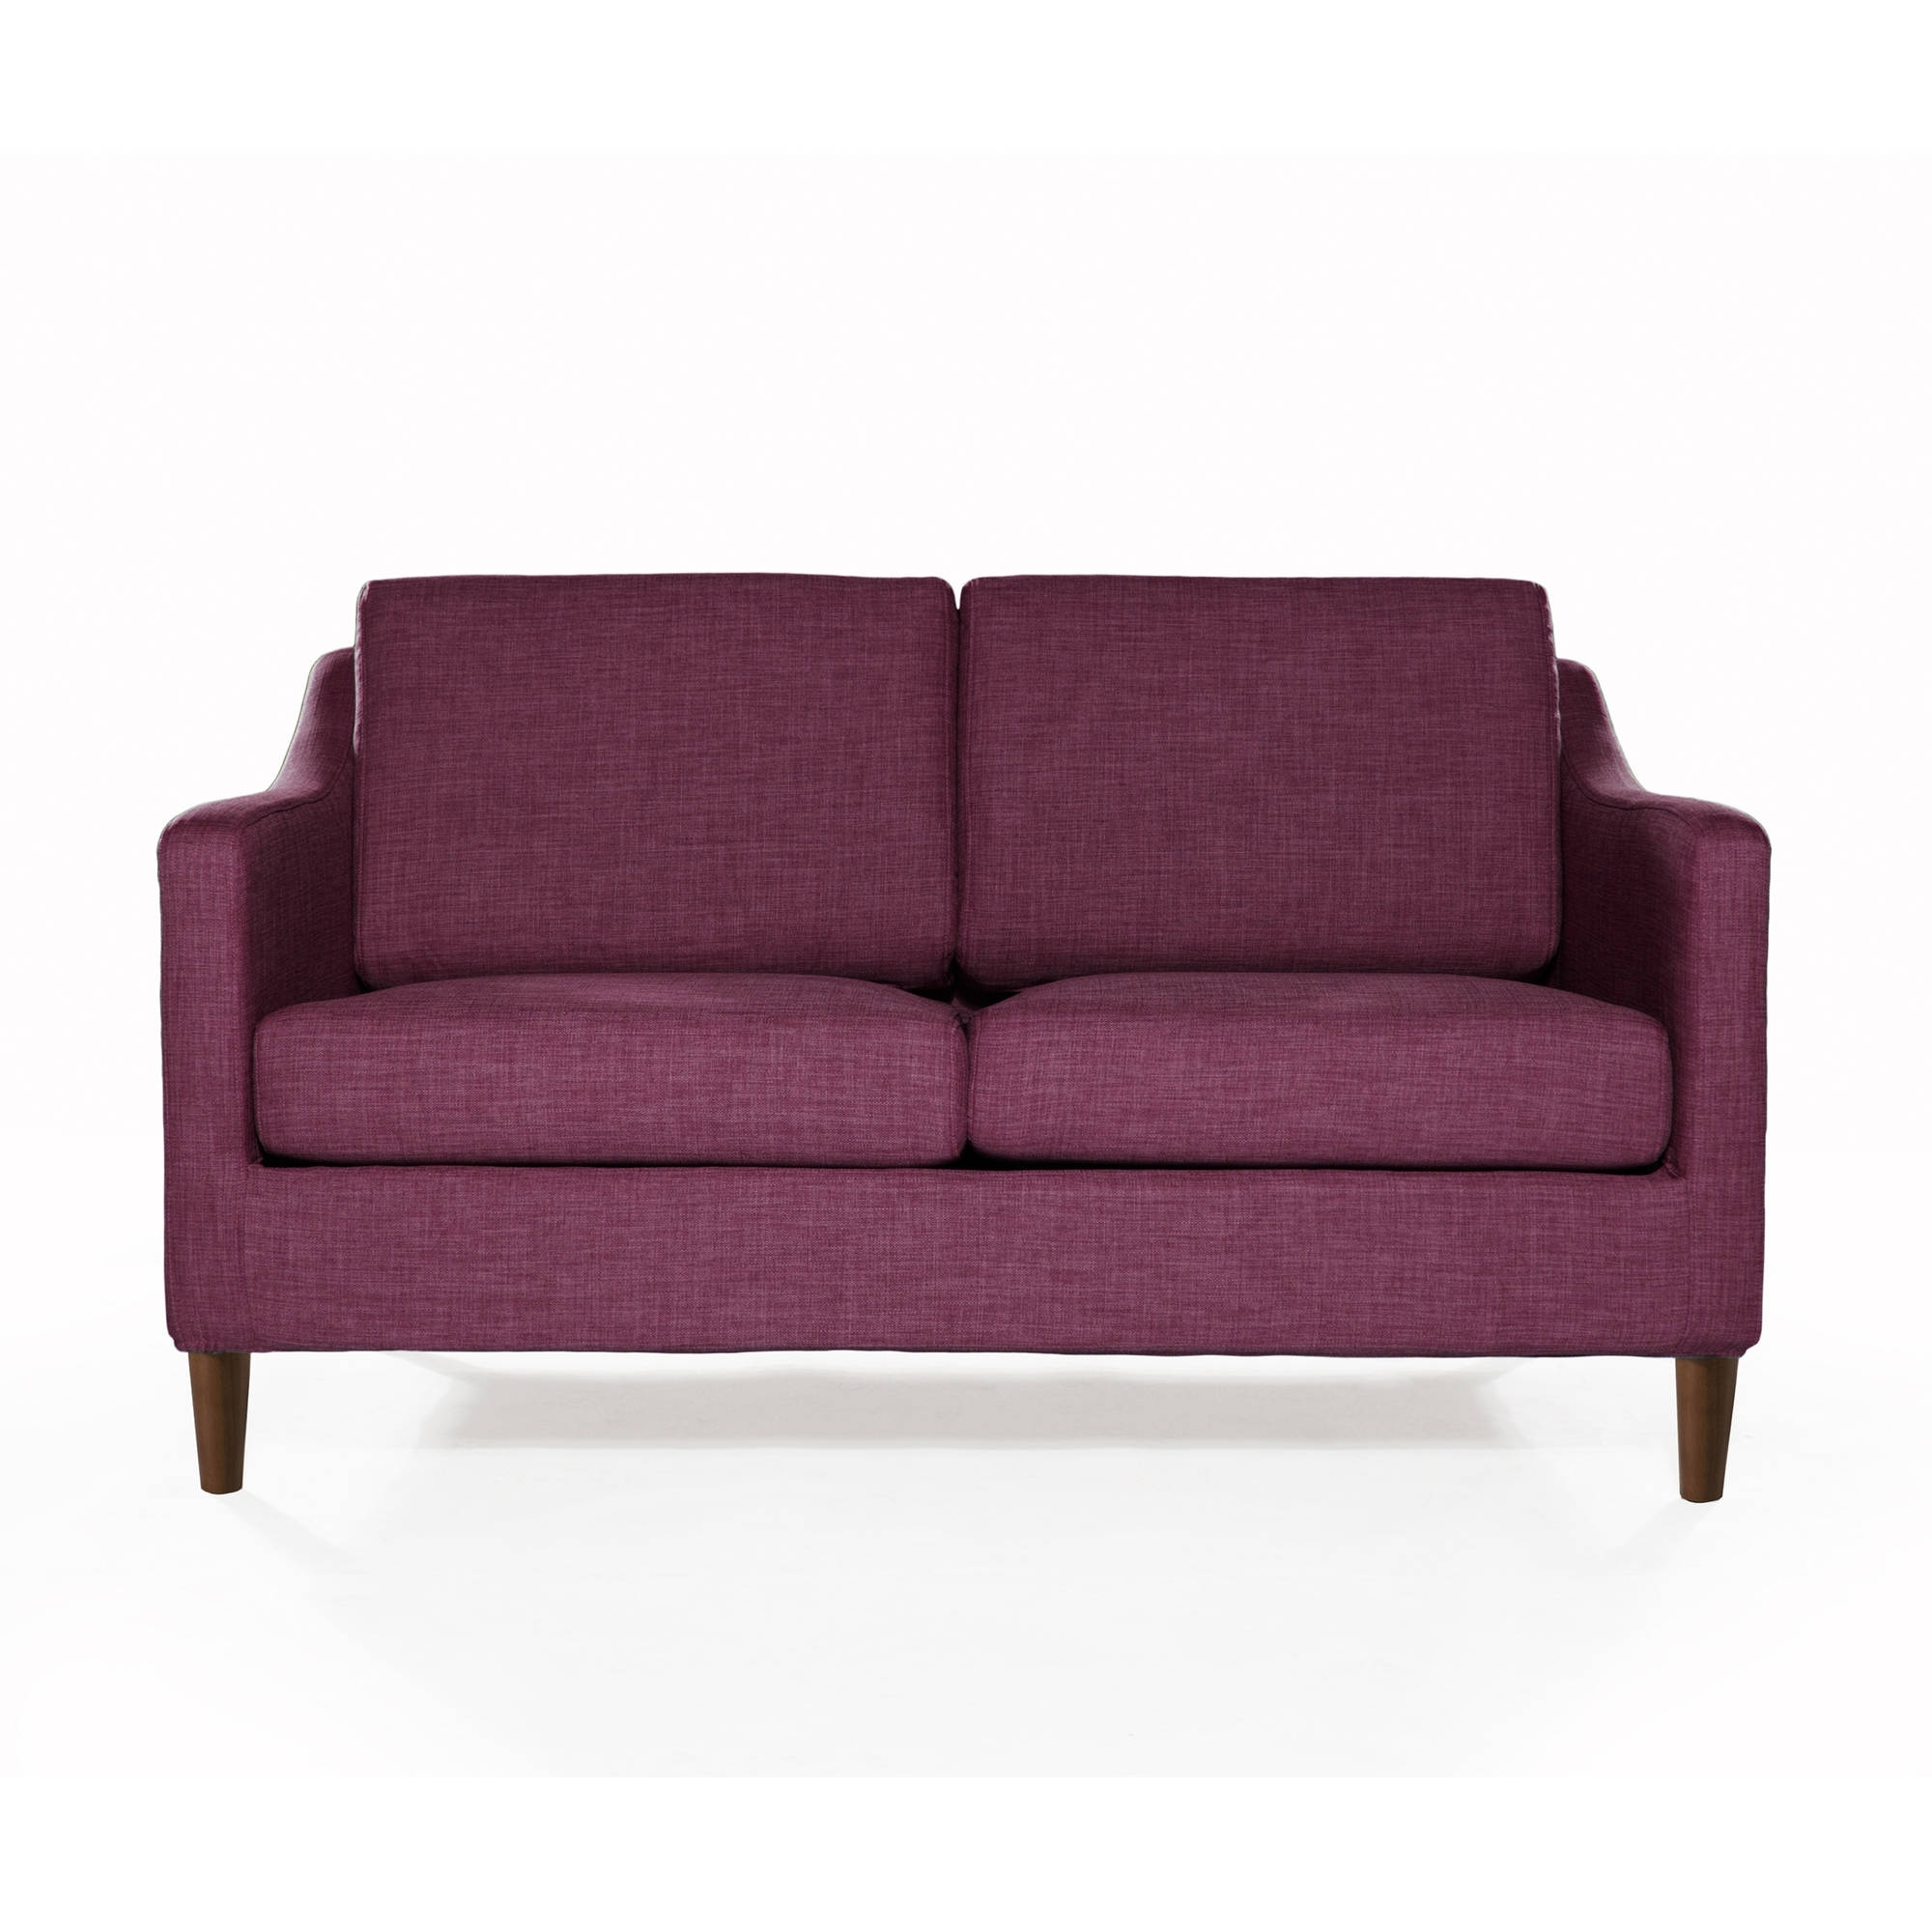 Fashionable Sectional Sofas Under 800 With Sofas & Couches – Walmart (View 2 of 20)